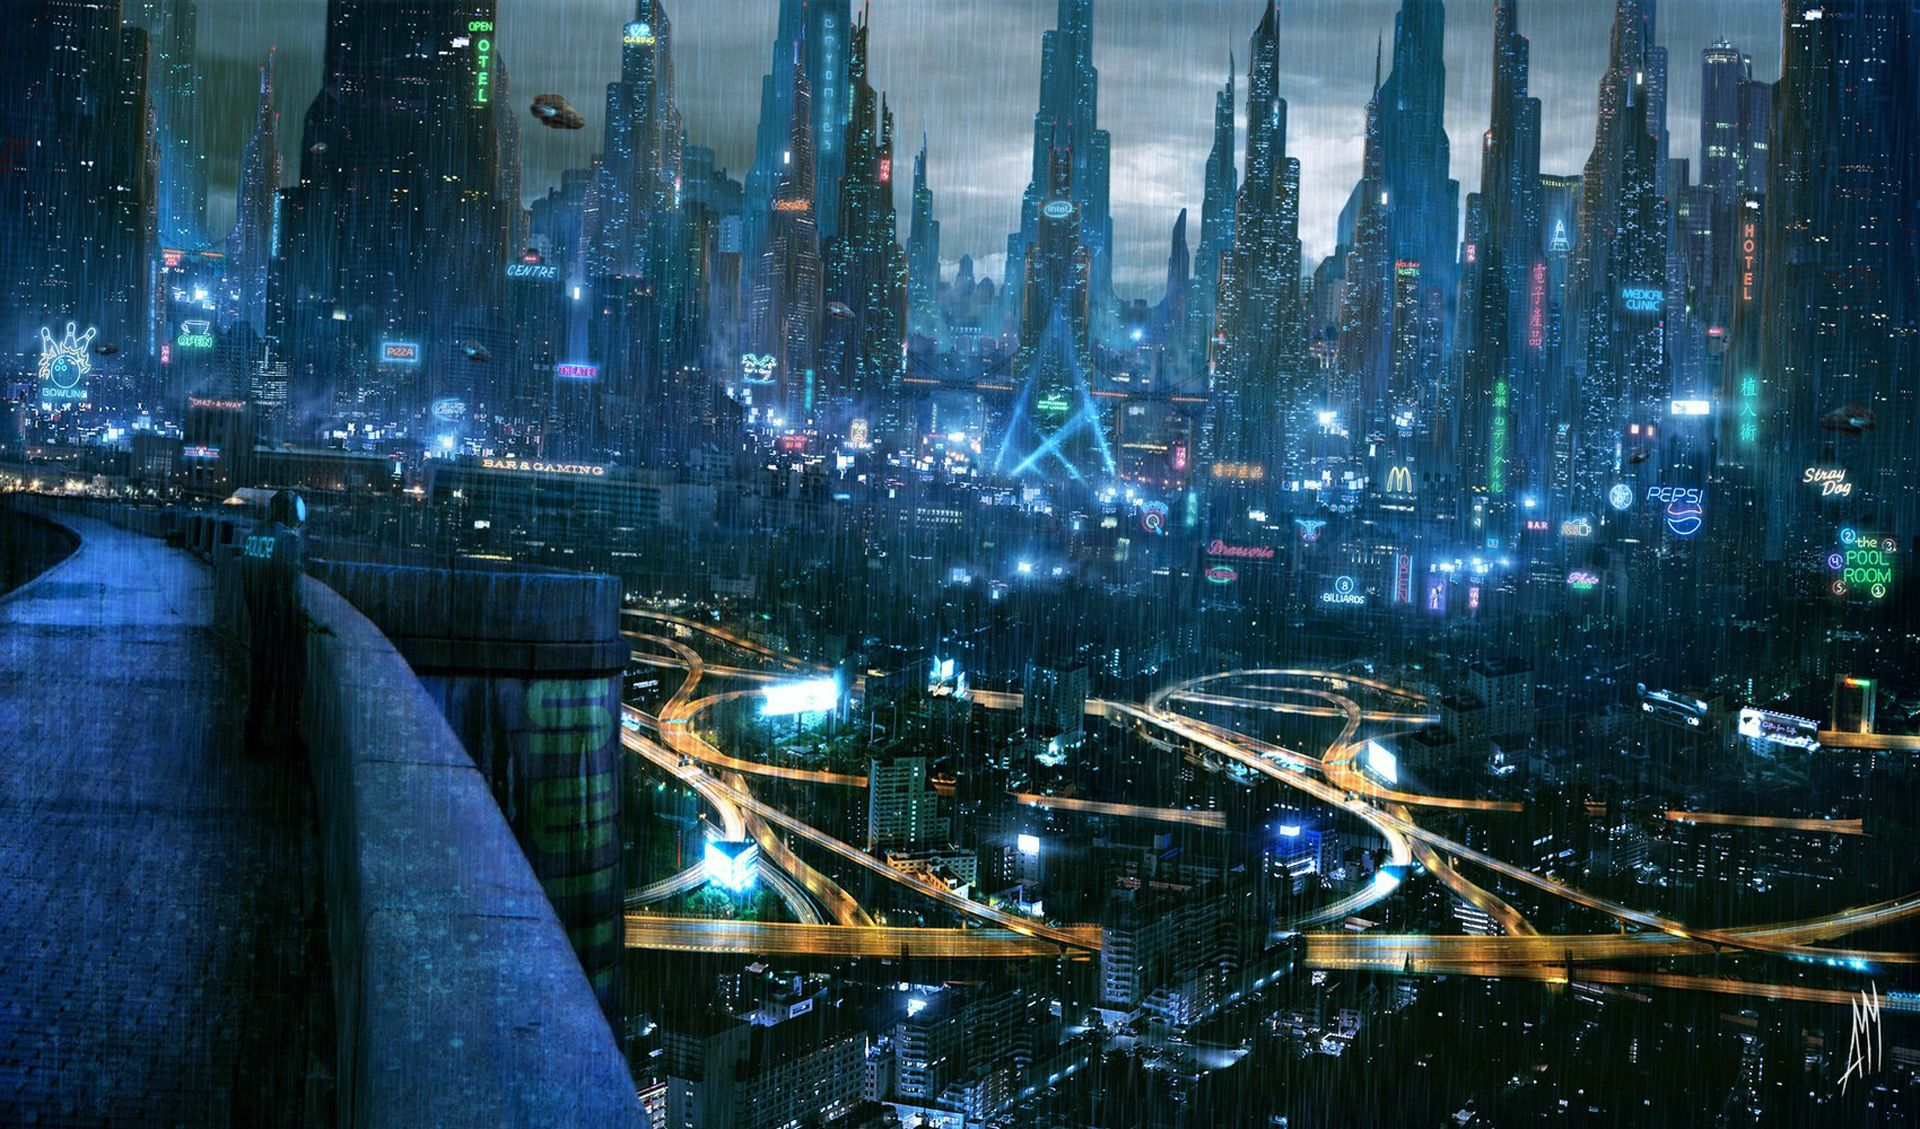 Awesome Sci Fi wallpaper High resolution wallpapers 1920x1129